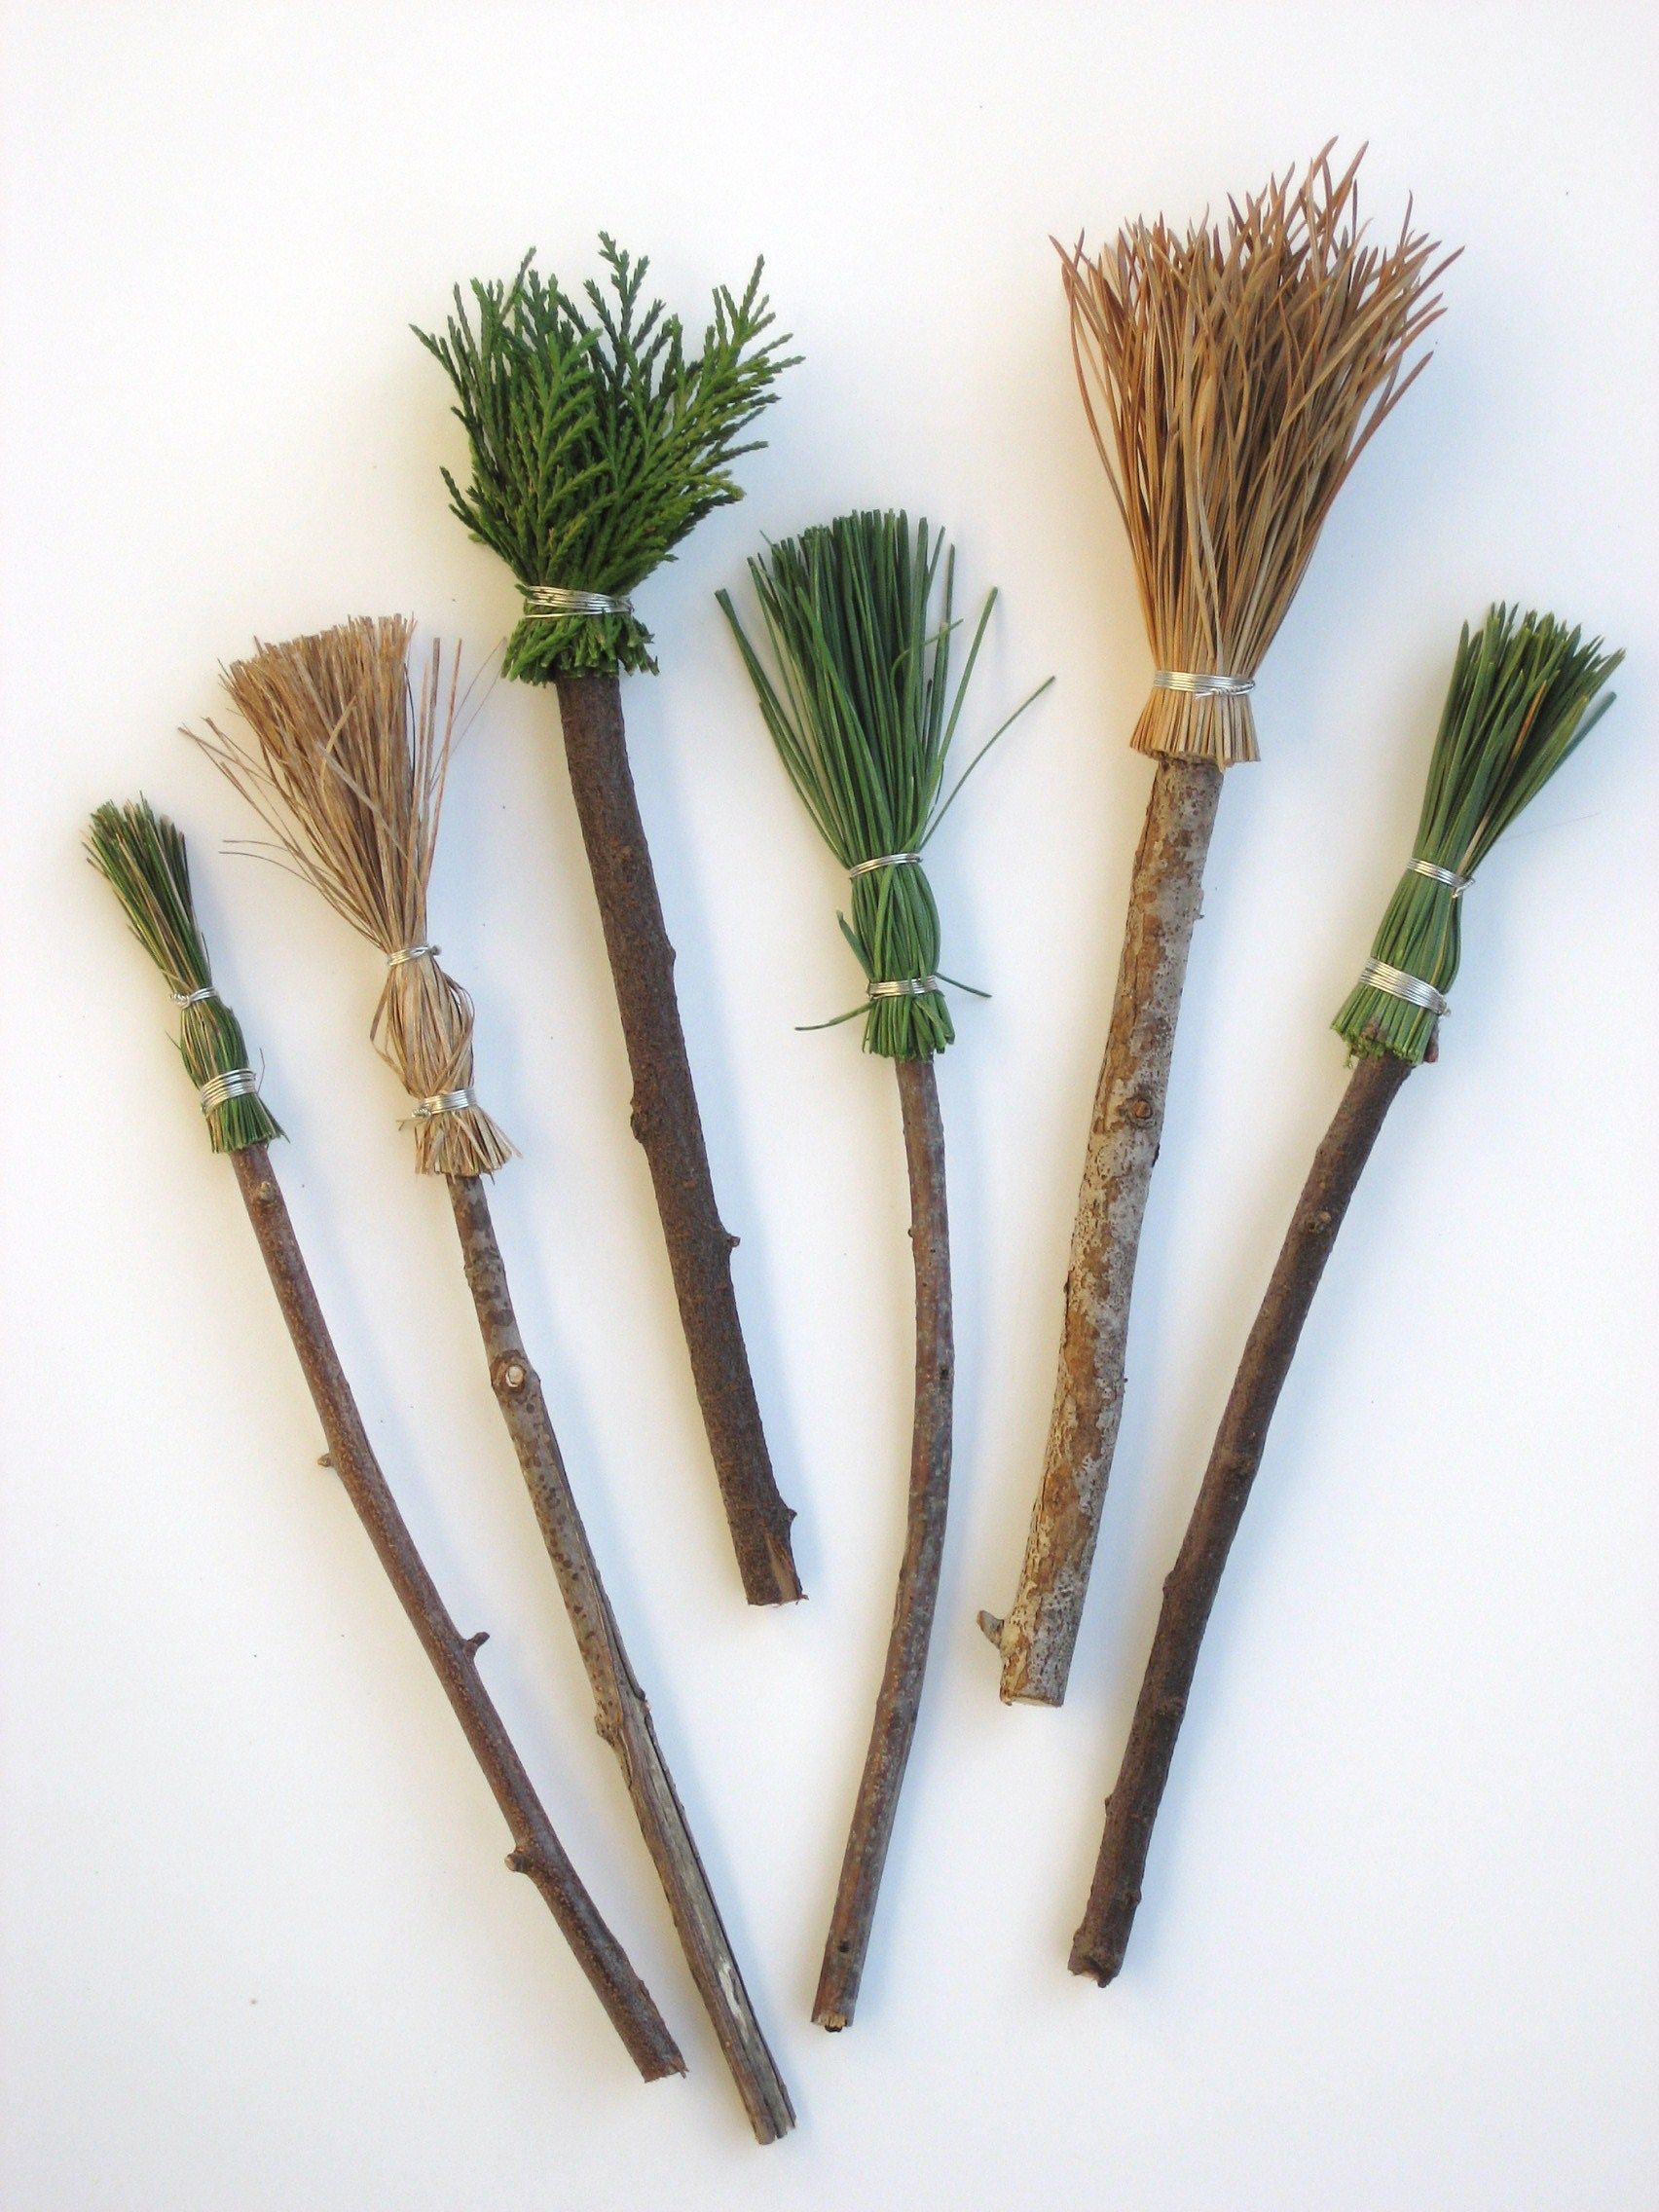 Your Child Can Make Some Brooms Or Paintbrushes From